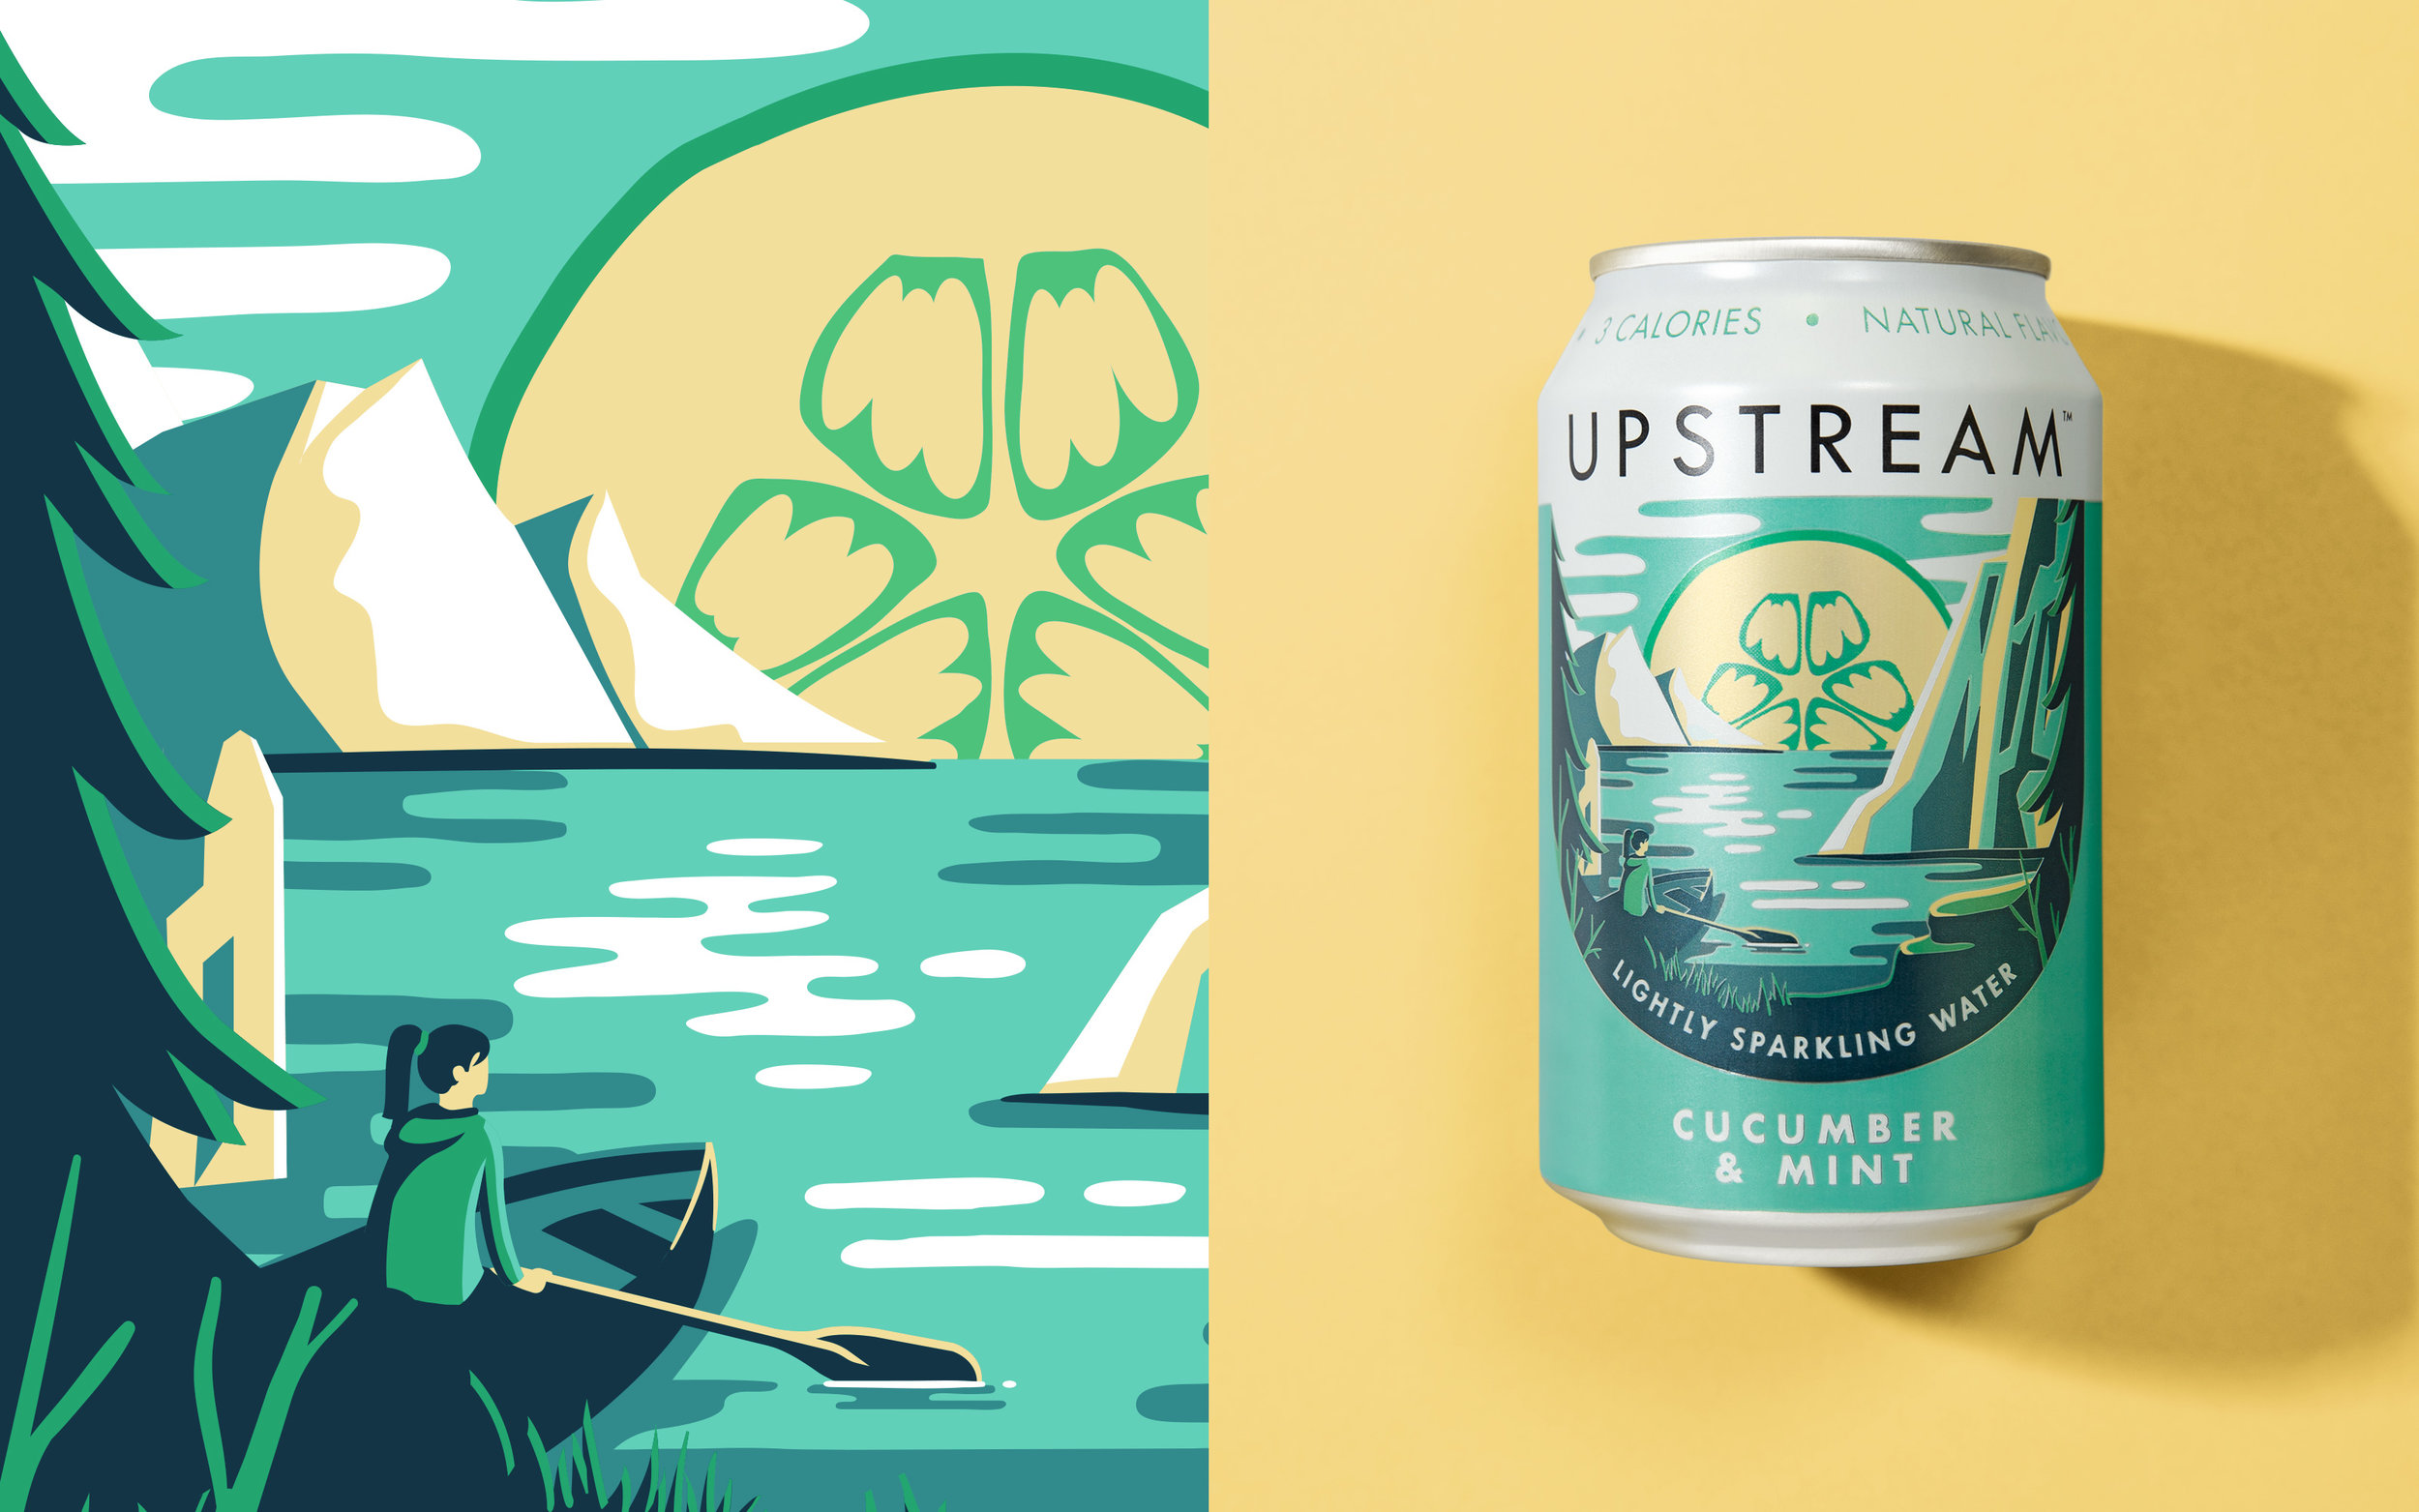 Robot Food Brings a Sparkle to the Everyday with New Brand Upstream / World Brand Design Society